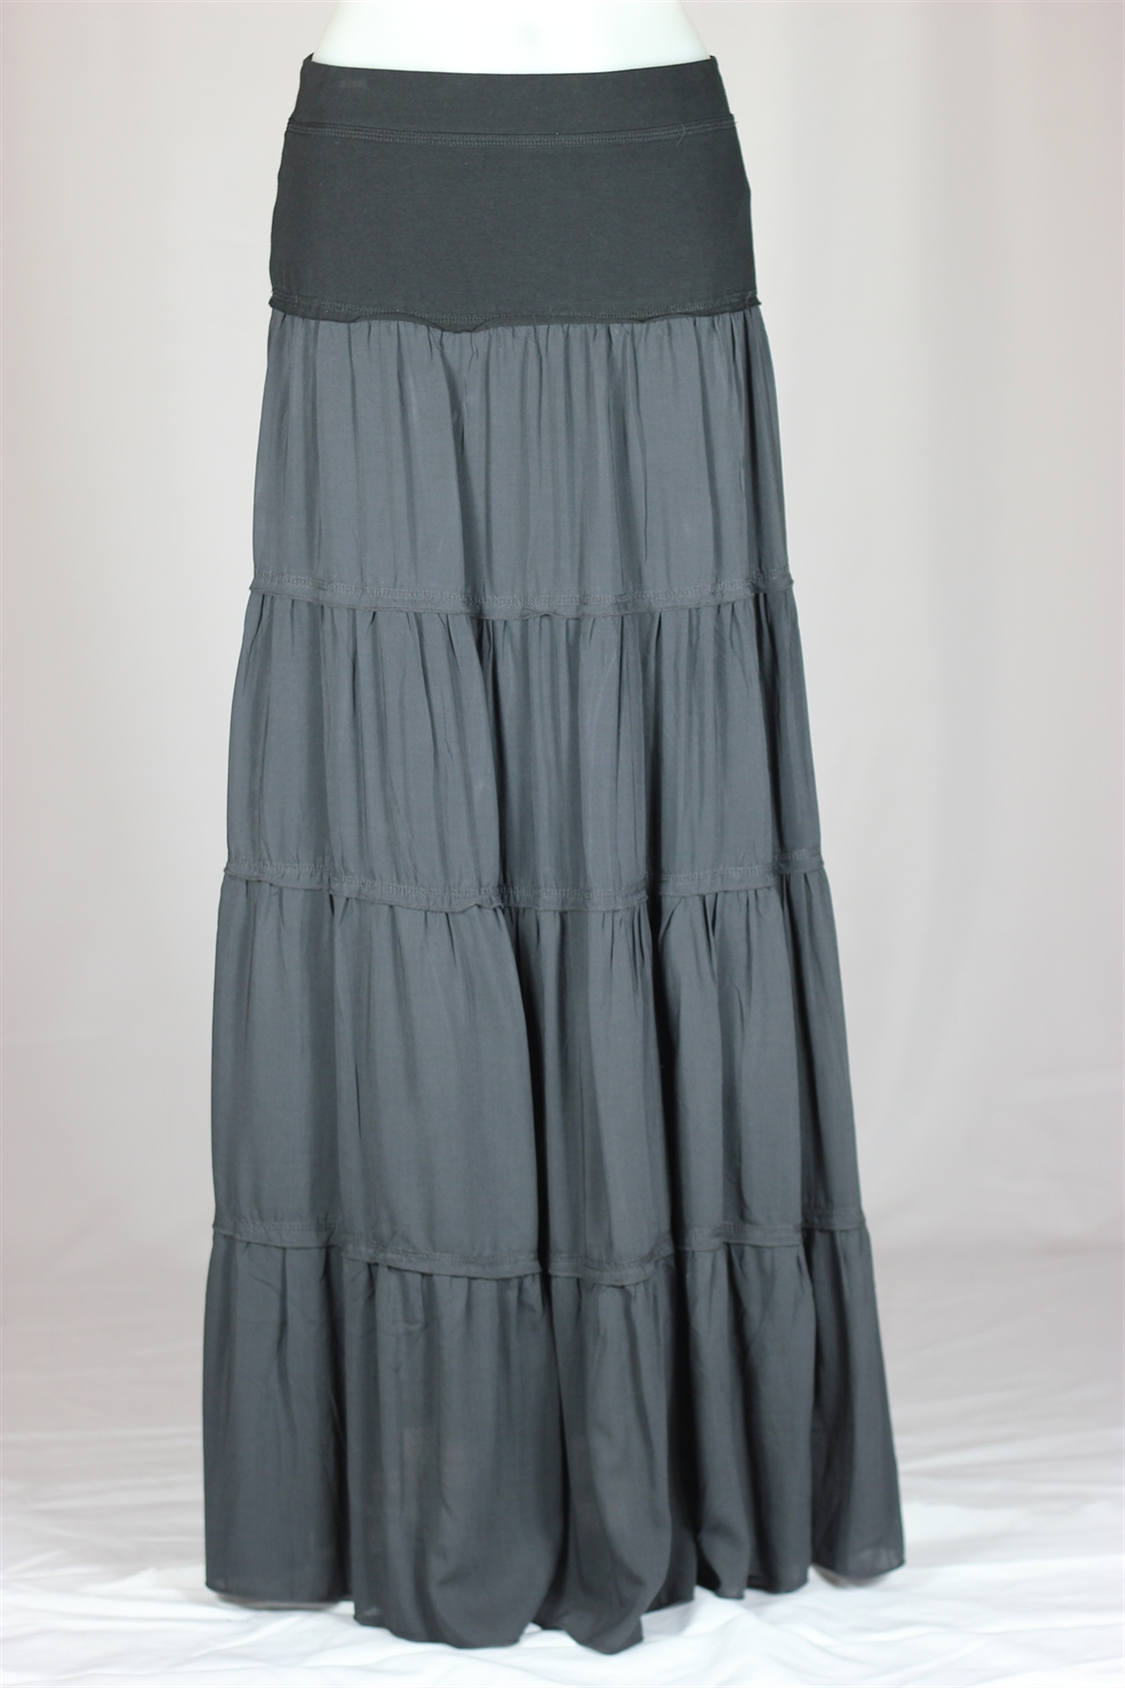 tiered maxi skirt sizes 2 16